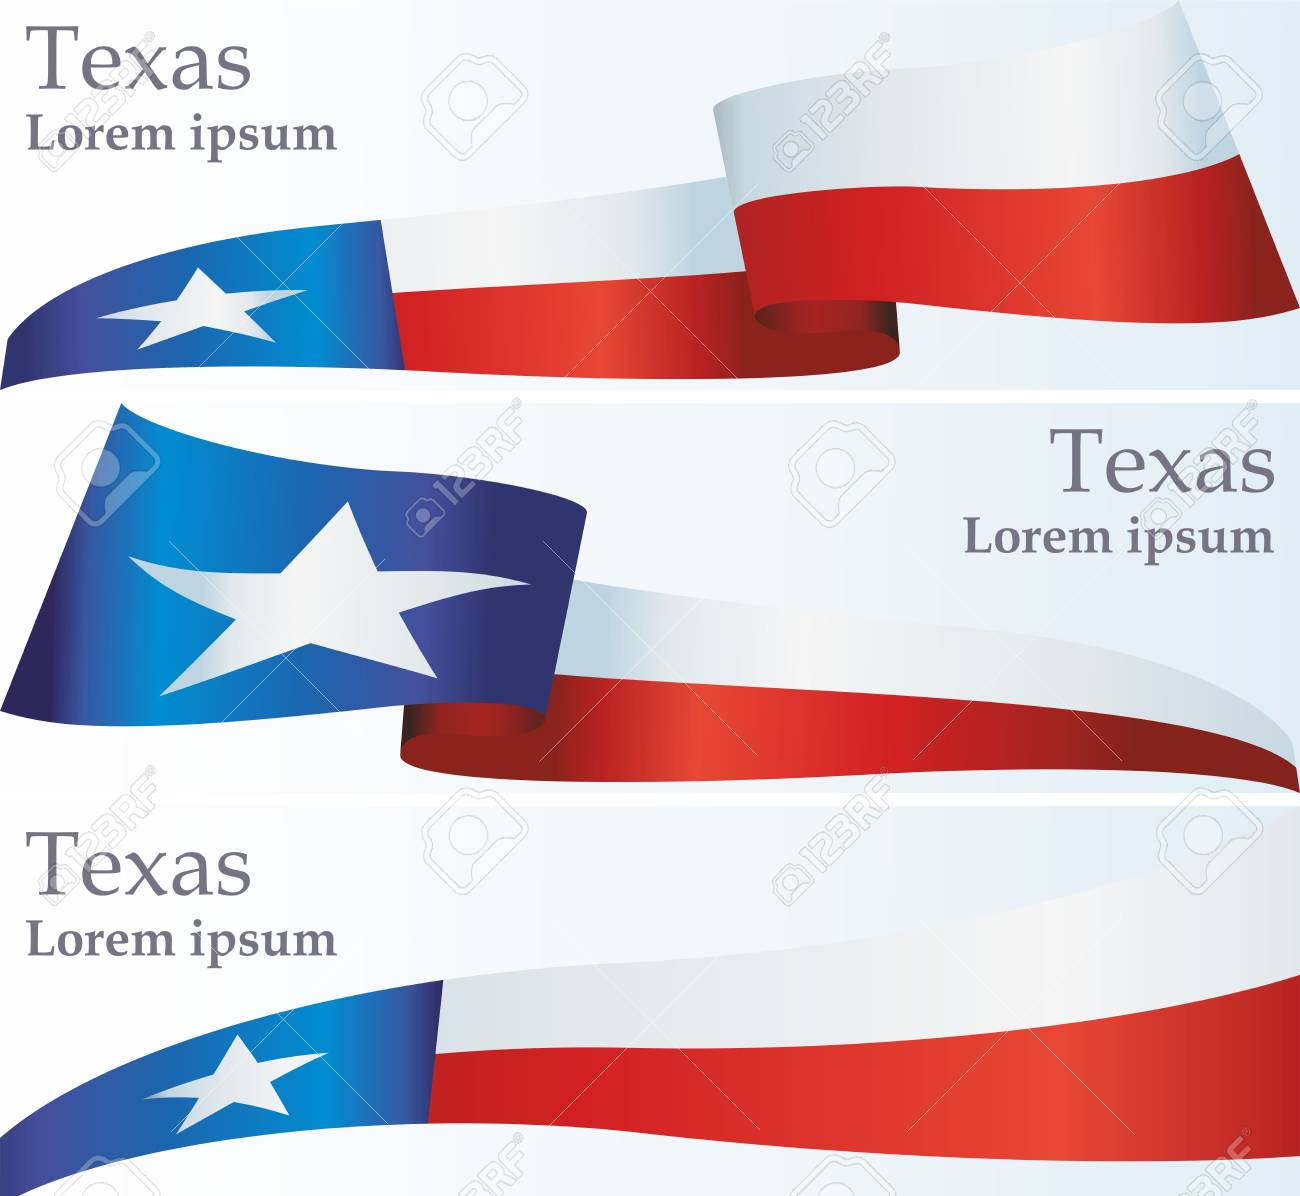 texas flag template for the award an official document with